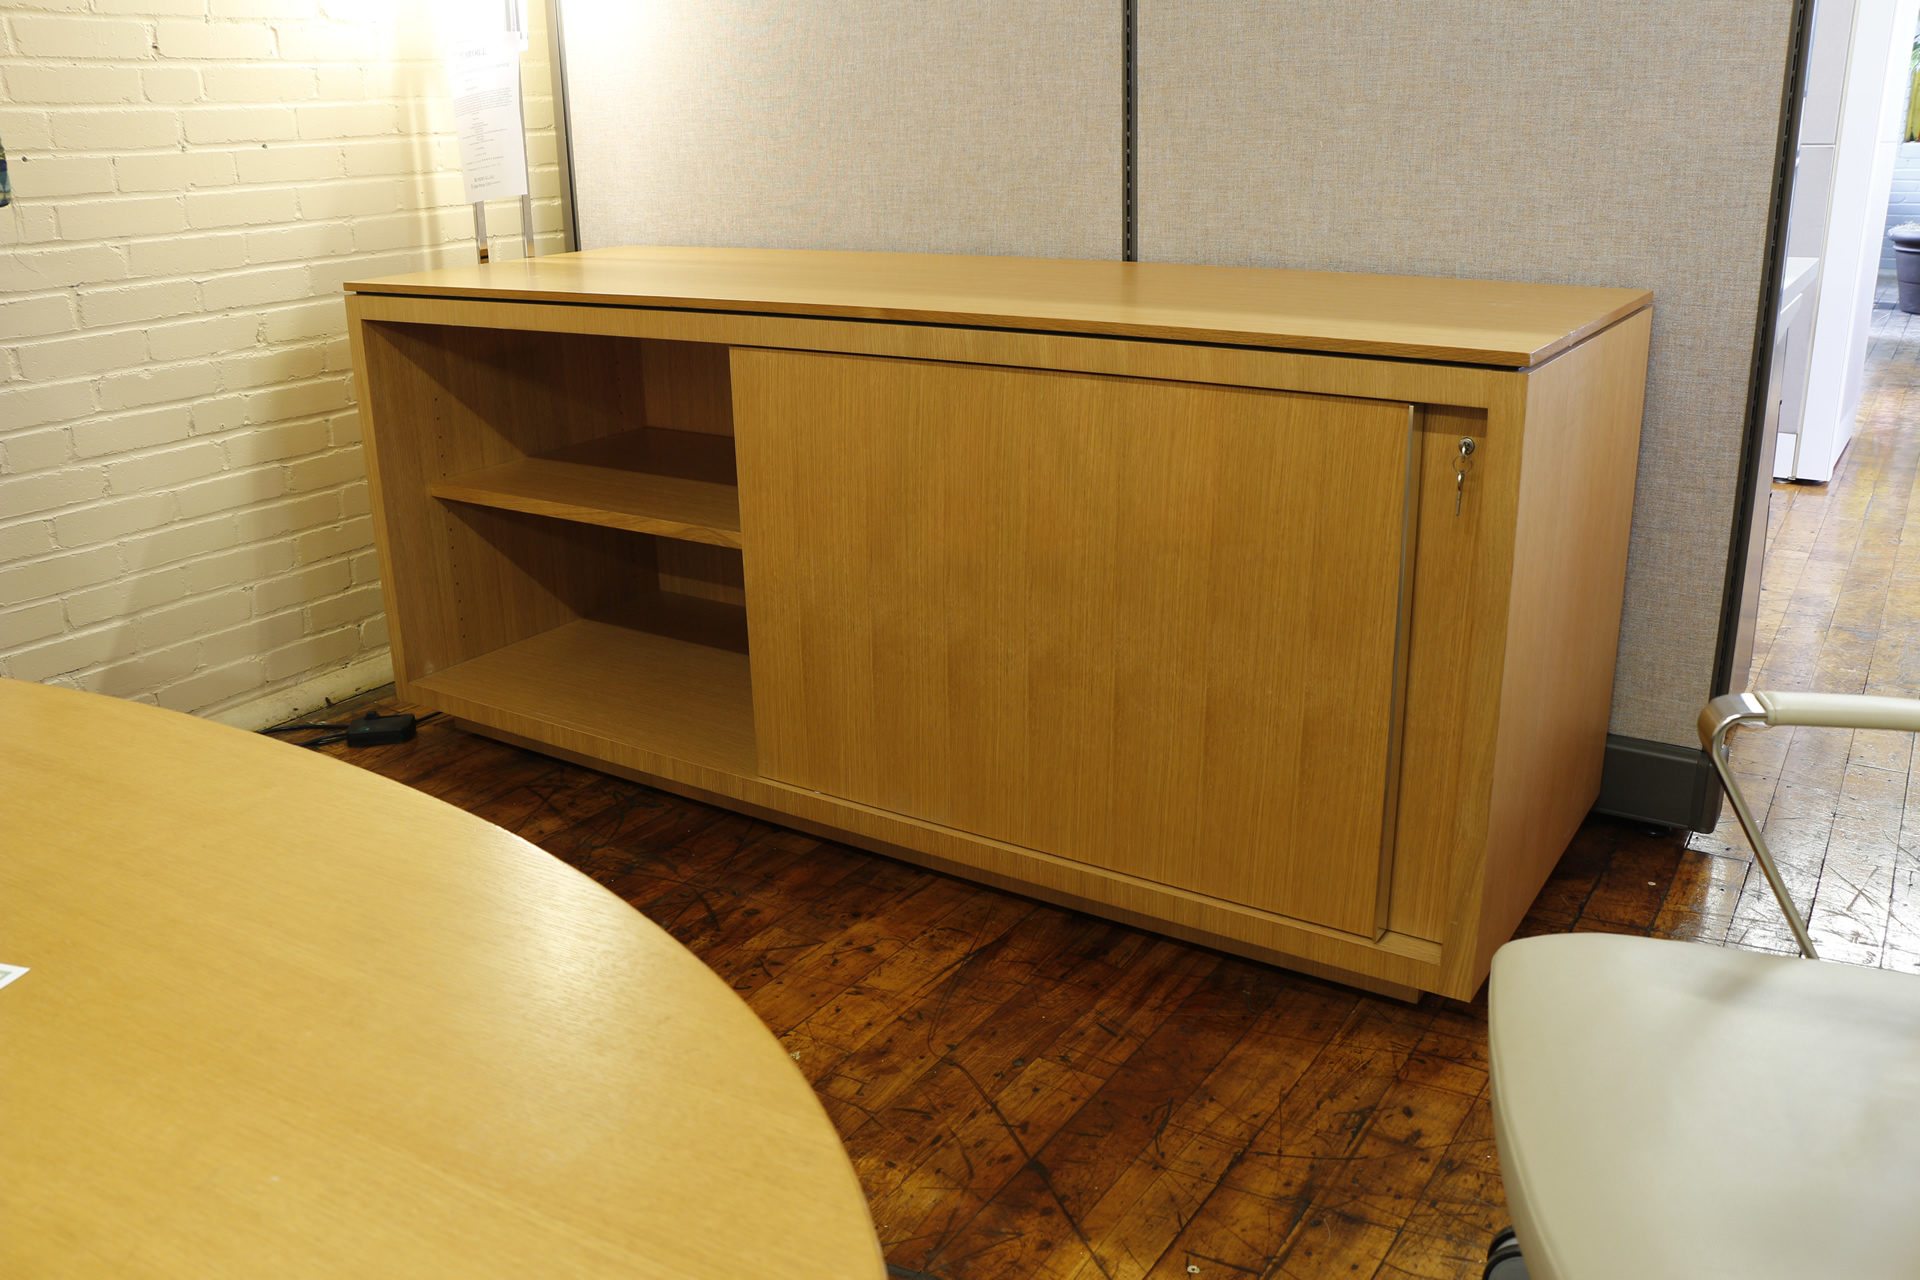 peartreeofficefurniture_peartreeofficefurniture_mg_4101.jpg